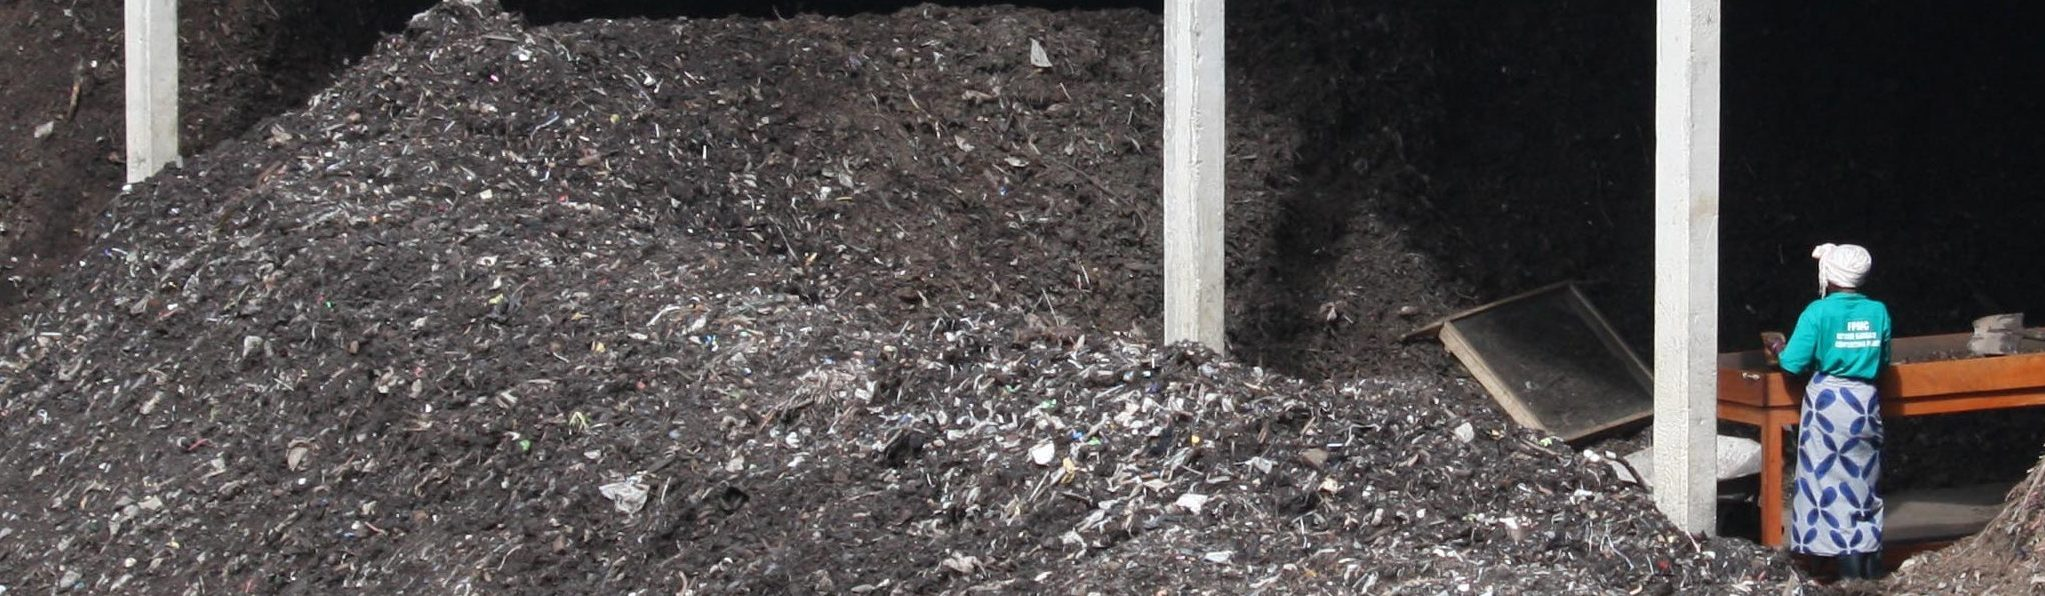 Urban Solid waste composting in Uganda, africa, climate change project.